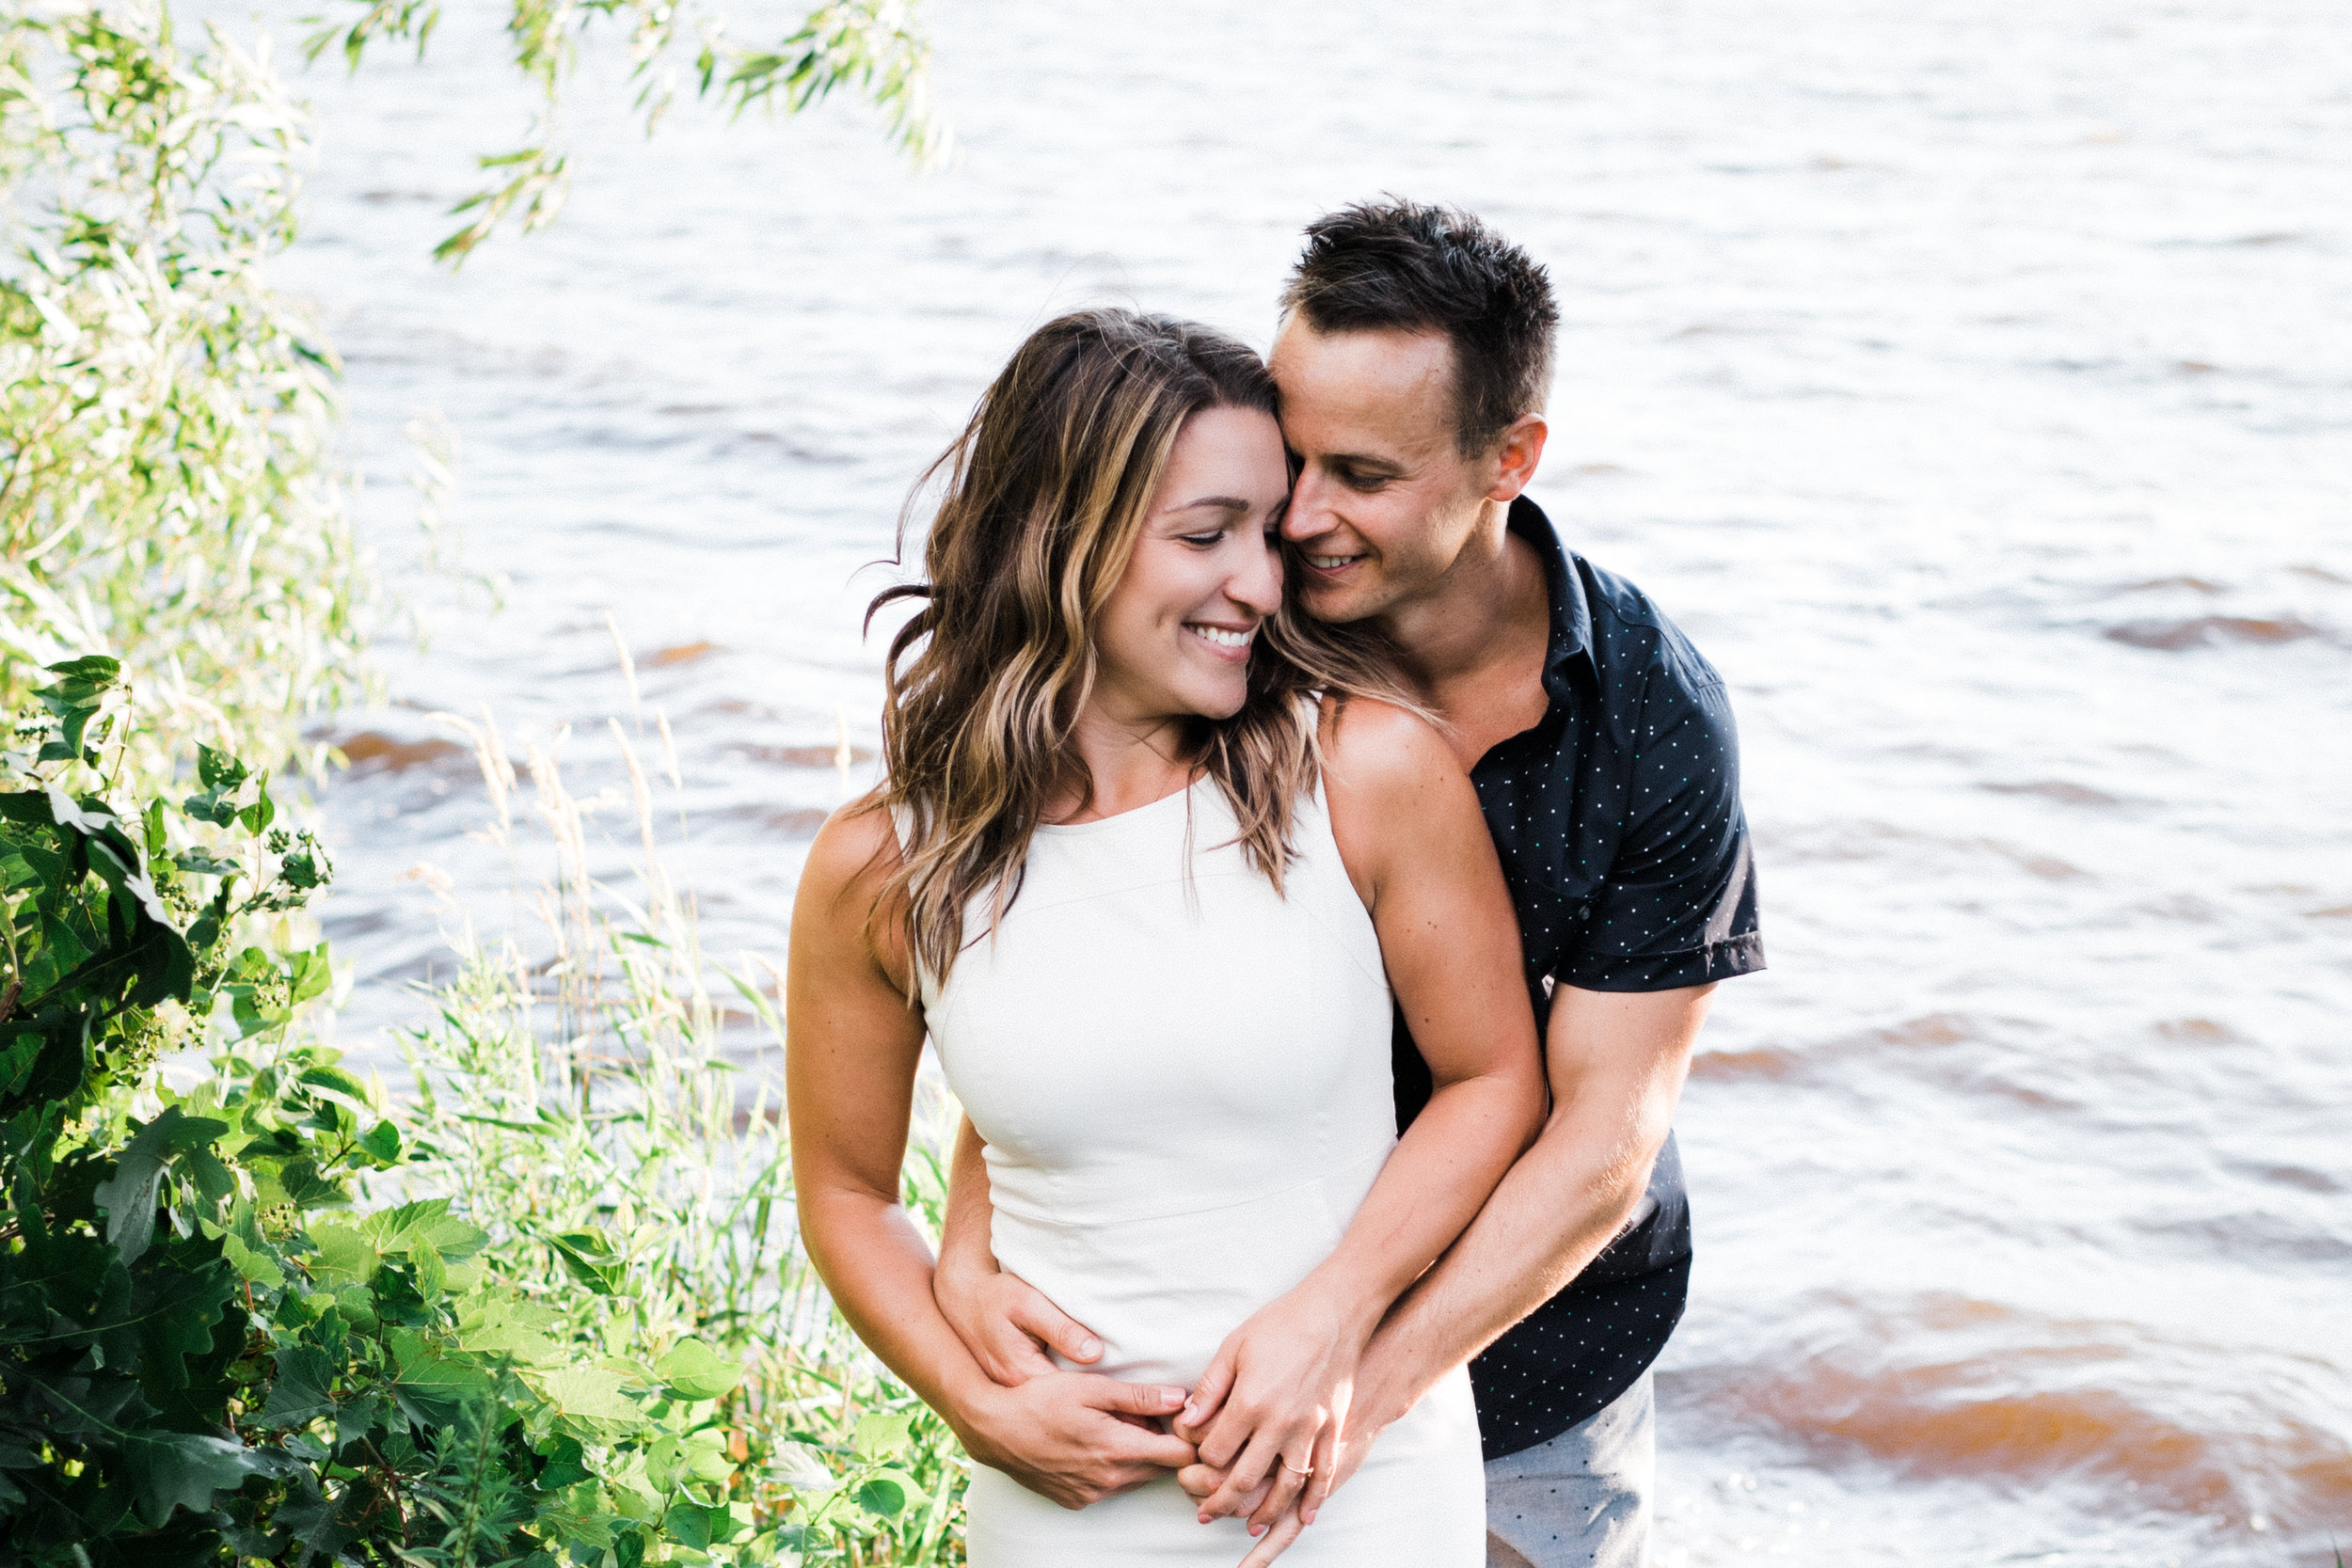 Man stands behind his fiancé and holds her by the waist as she smiles.